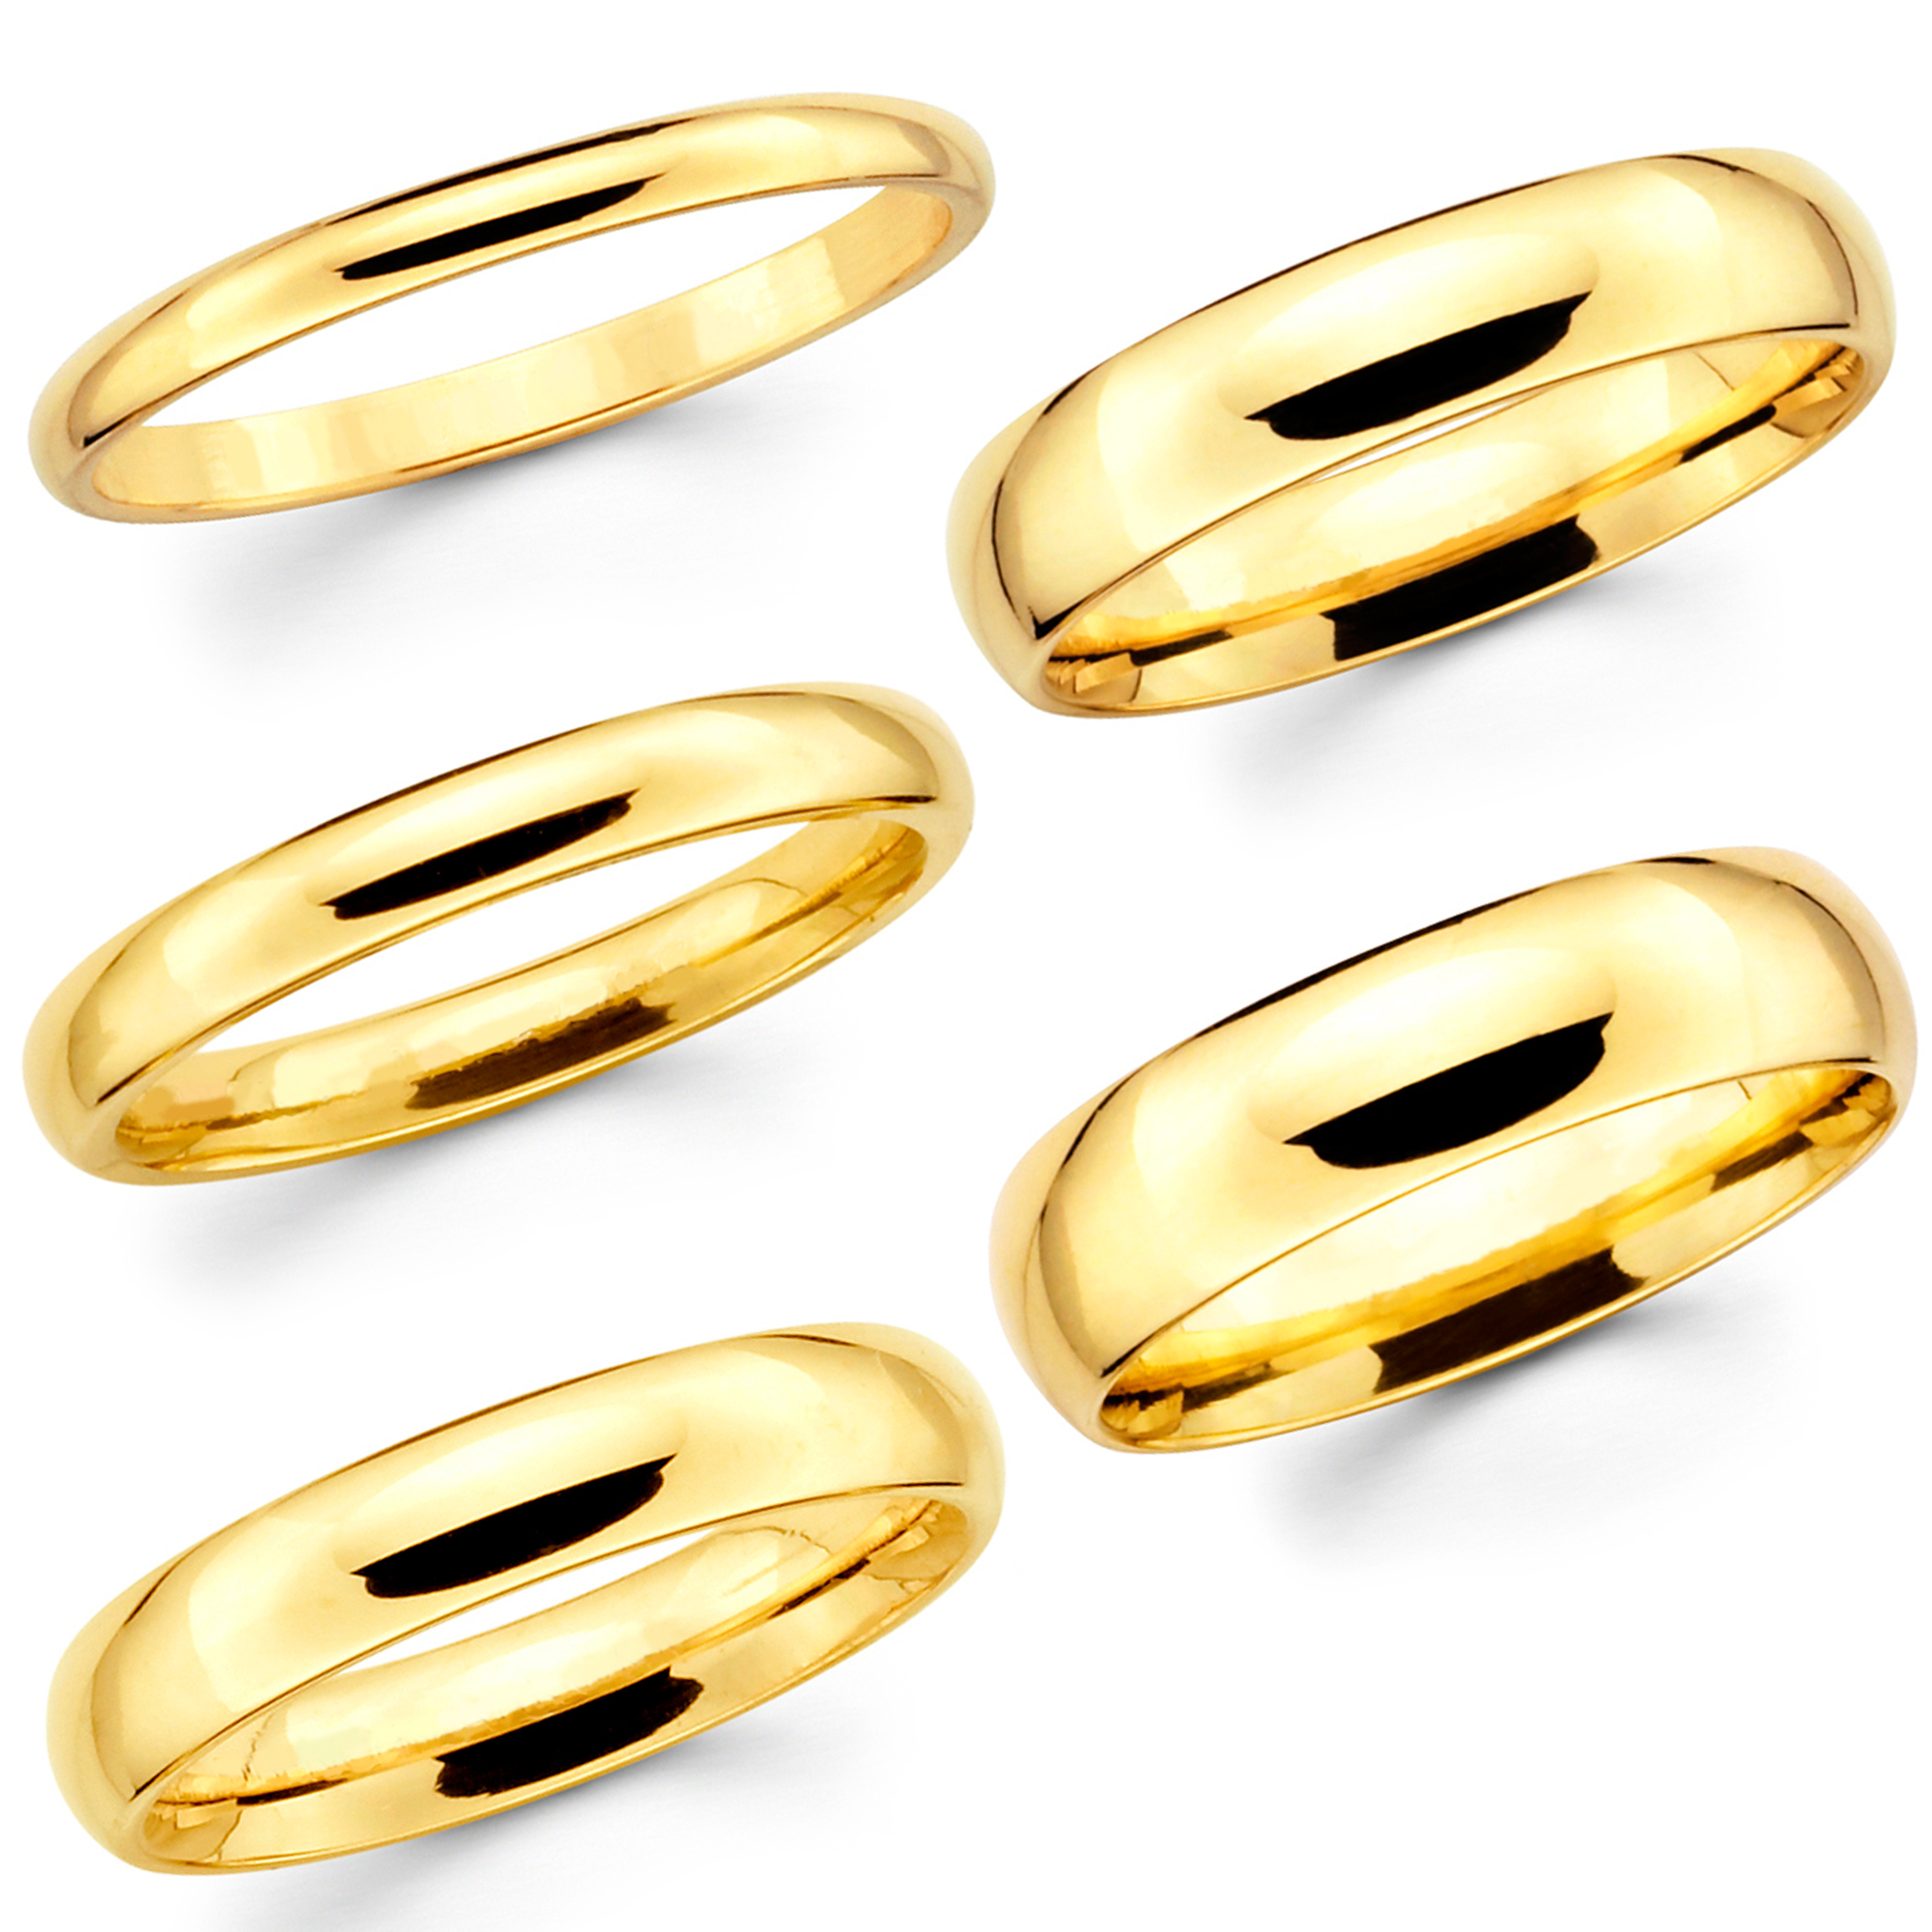 a plain band solid traditional ring gold topic d shaped wear yellow wedding anyone bands